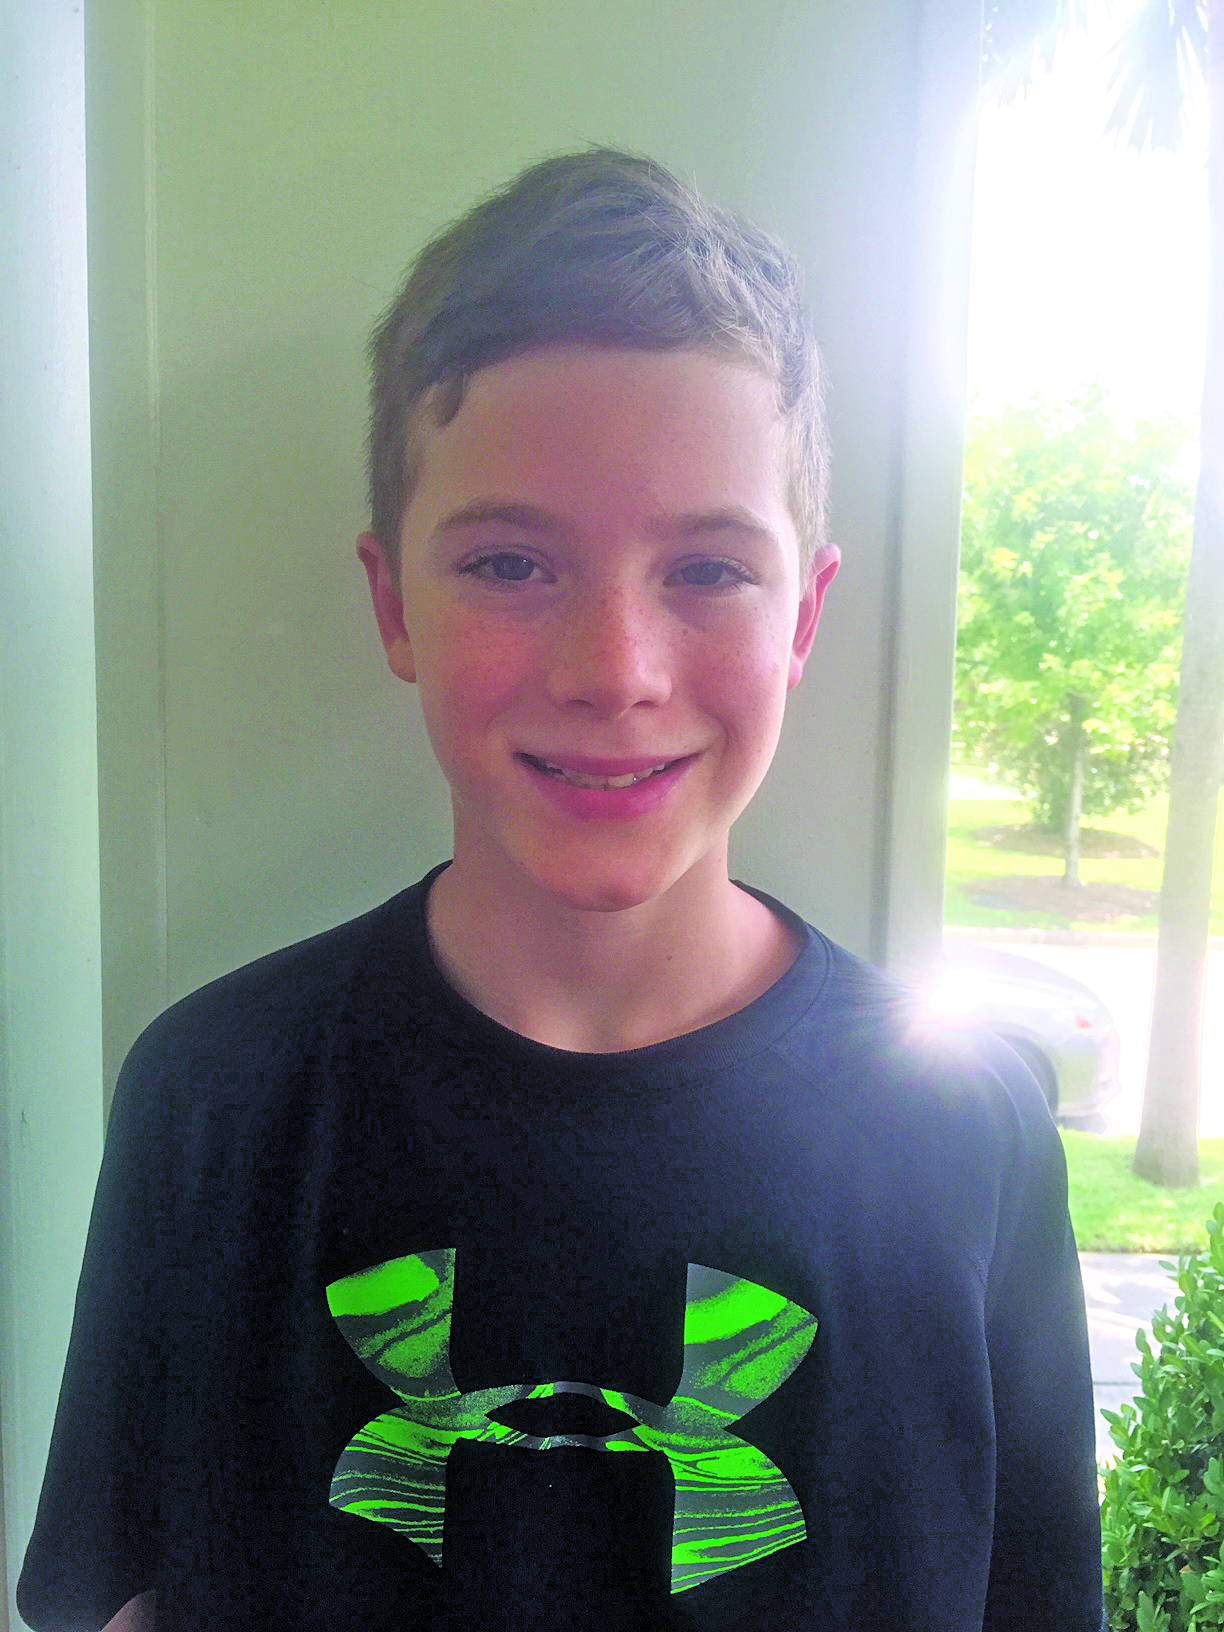 I'm looking forward to being with friends! Connor Age 9